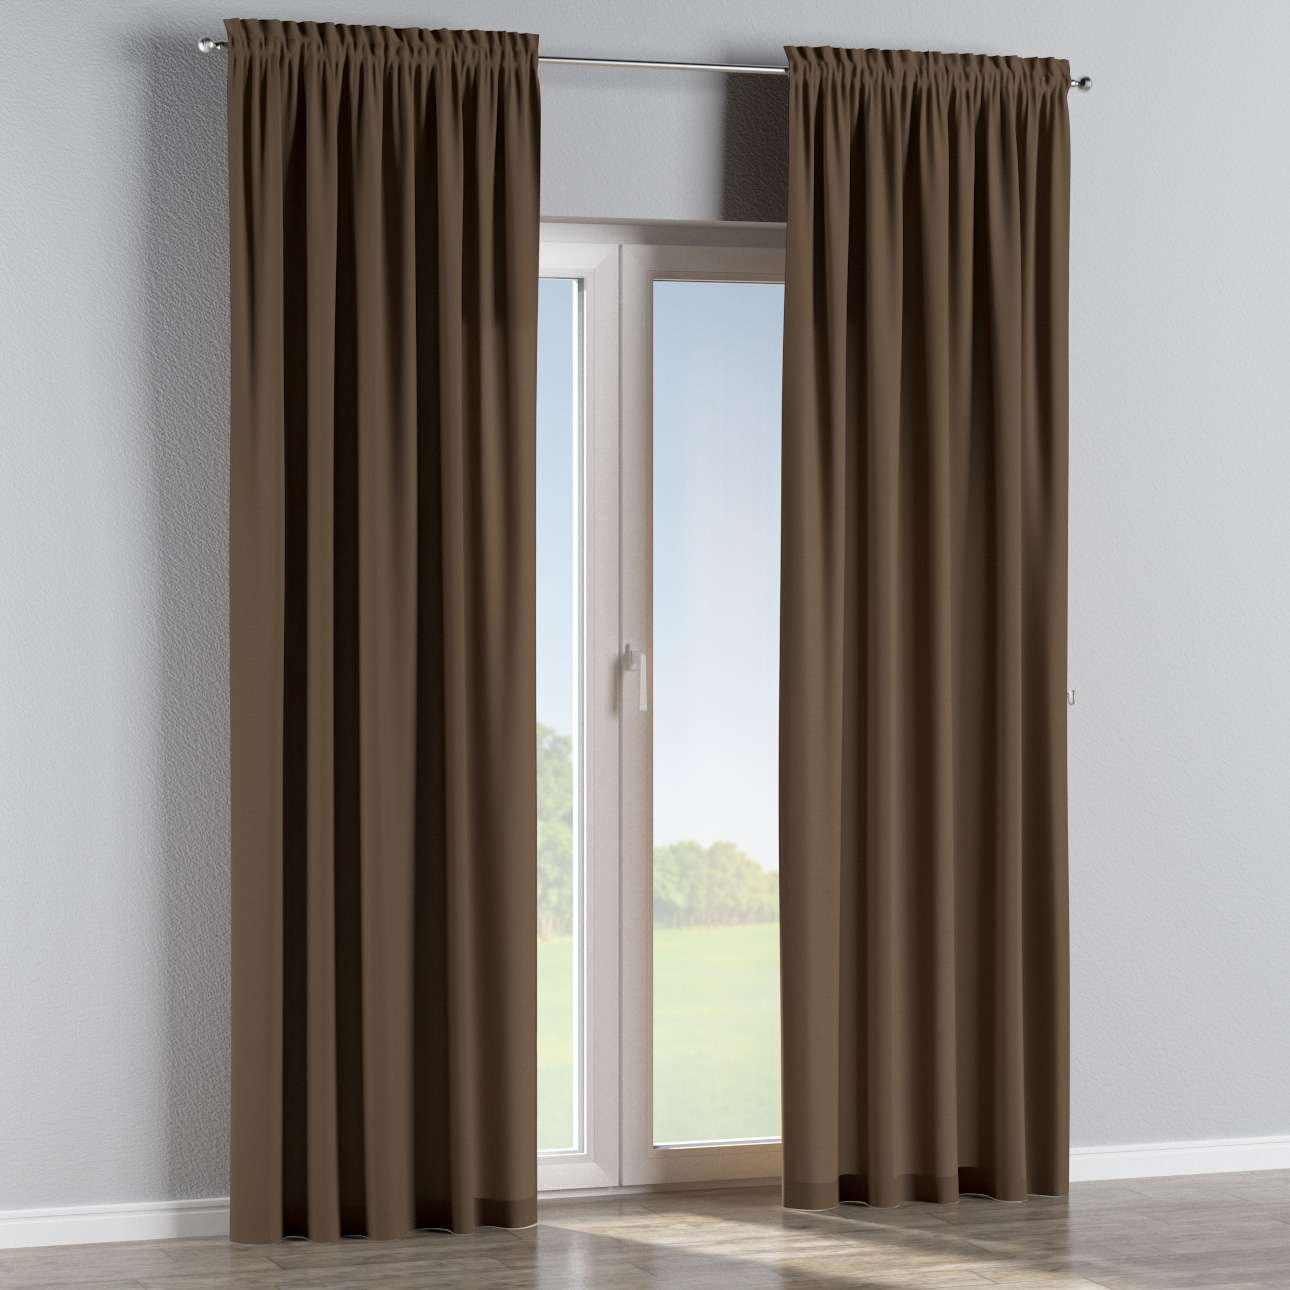 Slot and frill curtains in collection Panama Cotton, fabric: 702-02